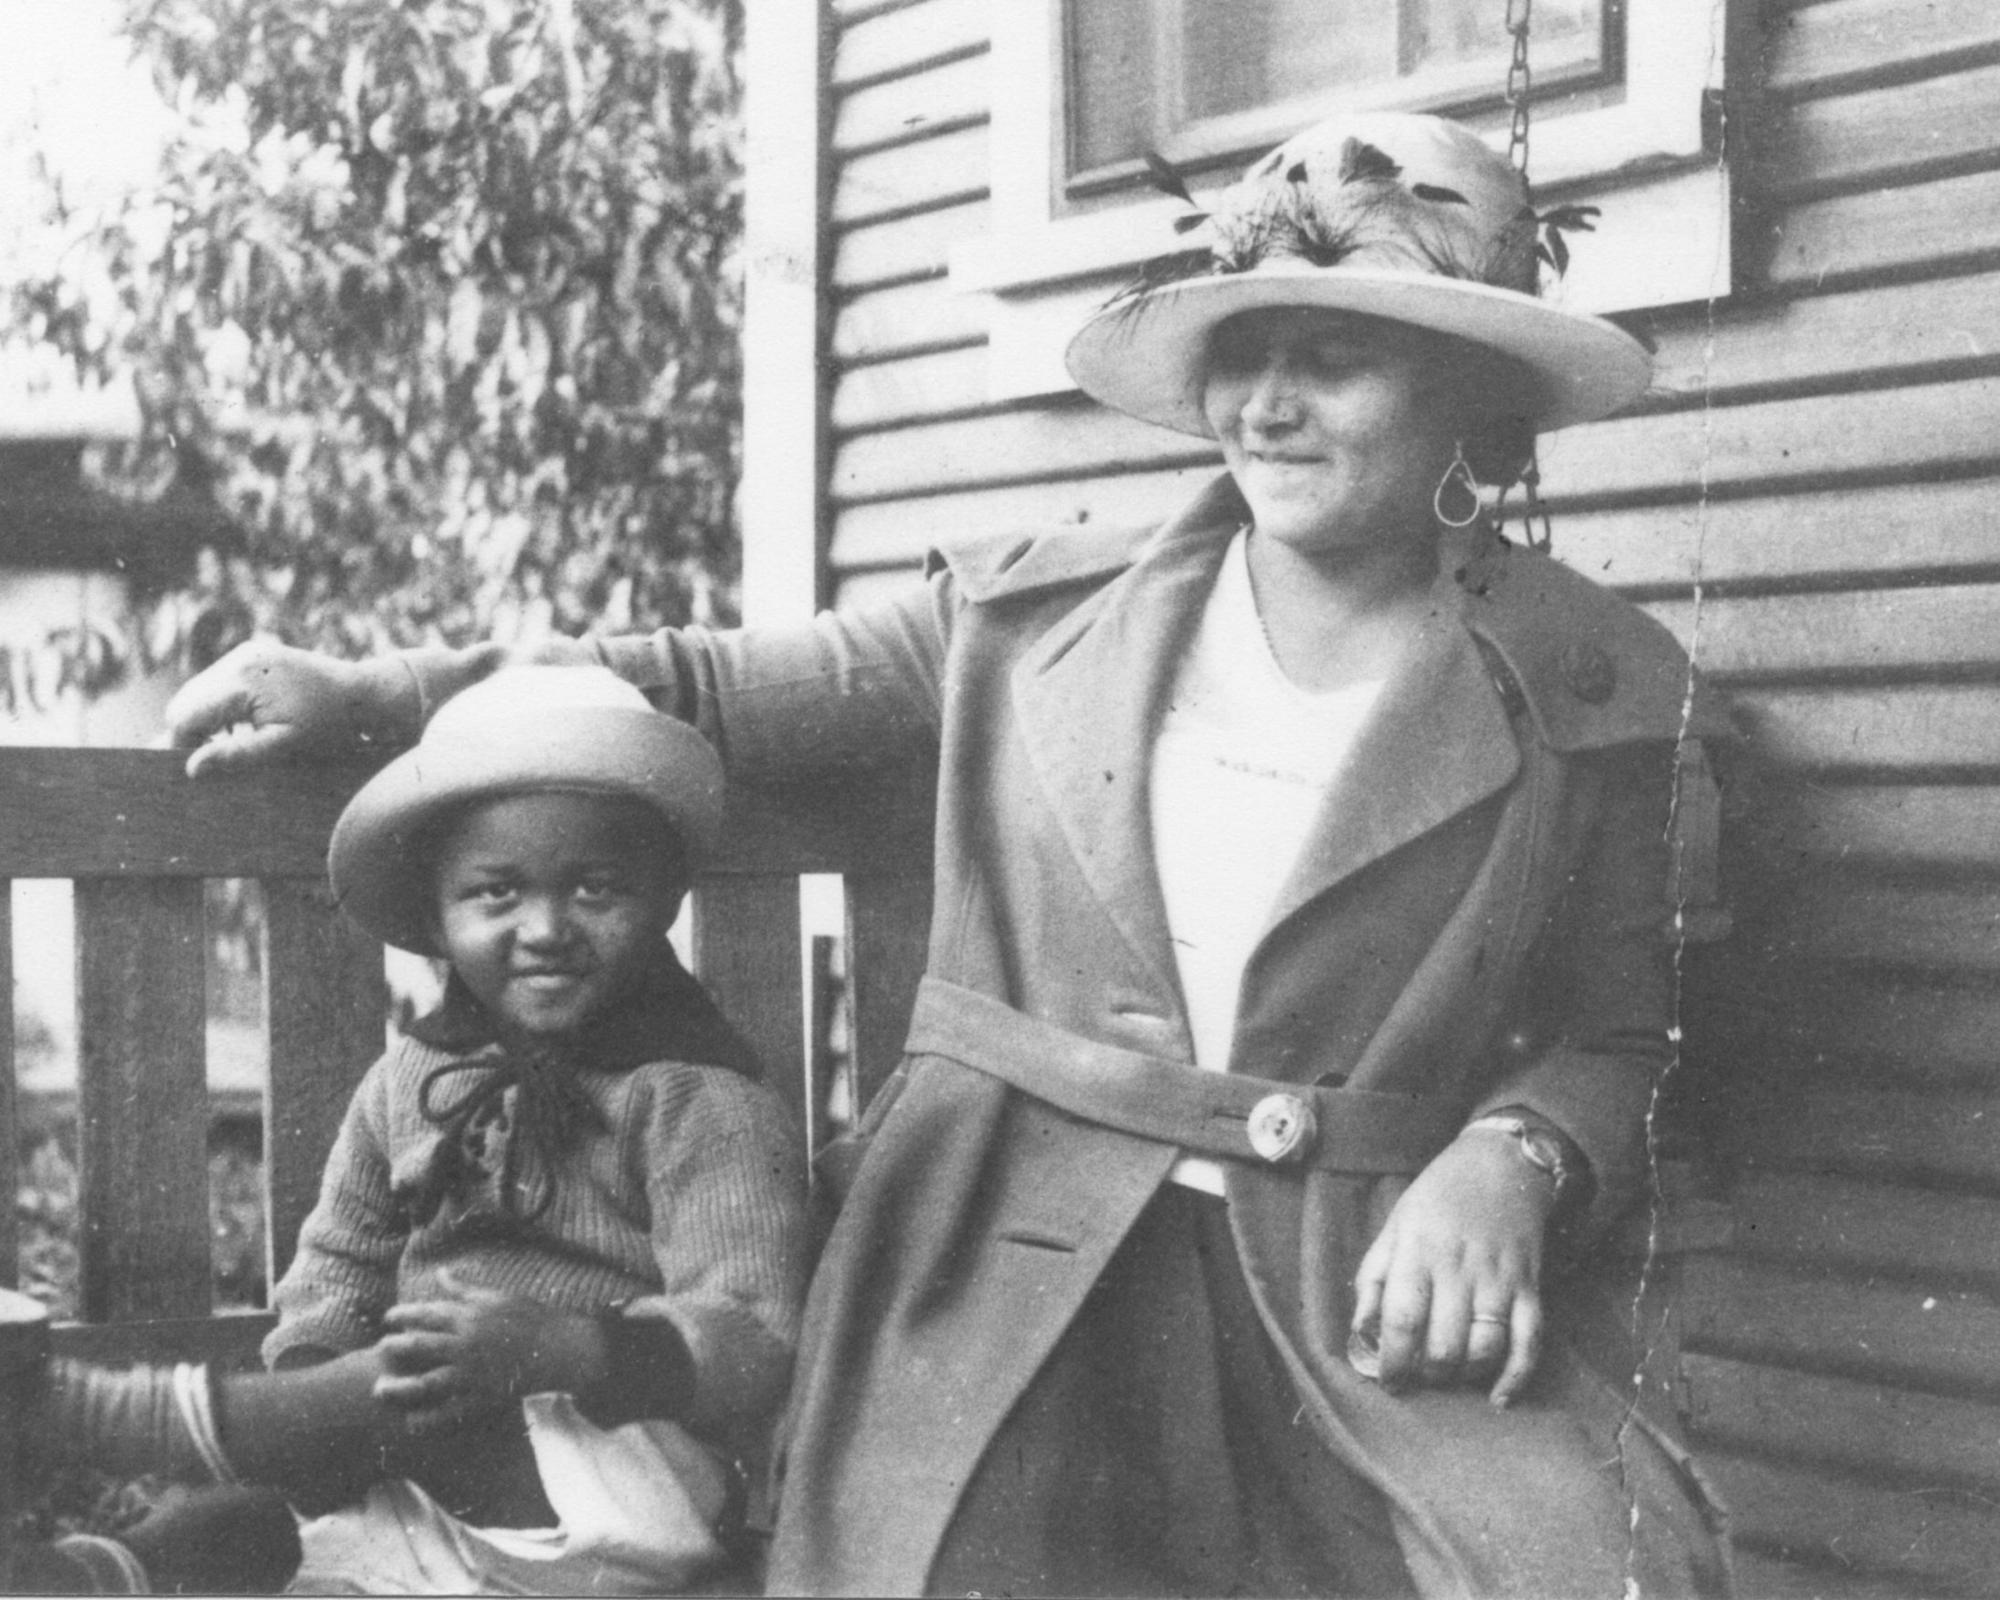 This photo provided by the Department of Special Collections, McFarlin Library, The University of Tulsa shows an African American woman and girl sitting on a porch swing, both dressed in coats and hats, by the side of a house. Provenance is unknown; however, it is believed that these photos were taken in Tulsa, Okla. prior to the Tulsa Race Massacre. (Department of Special Collections, McFarlin Library, The University of Tulsa via AP)